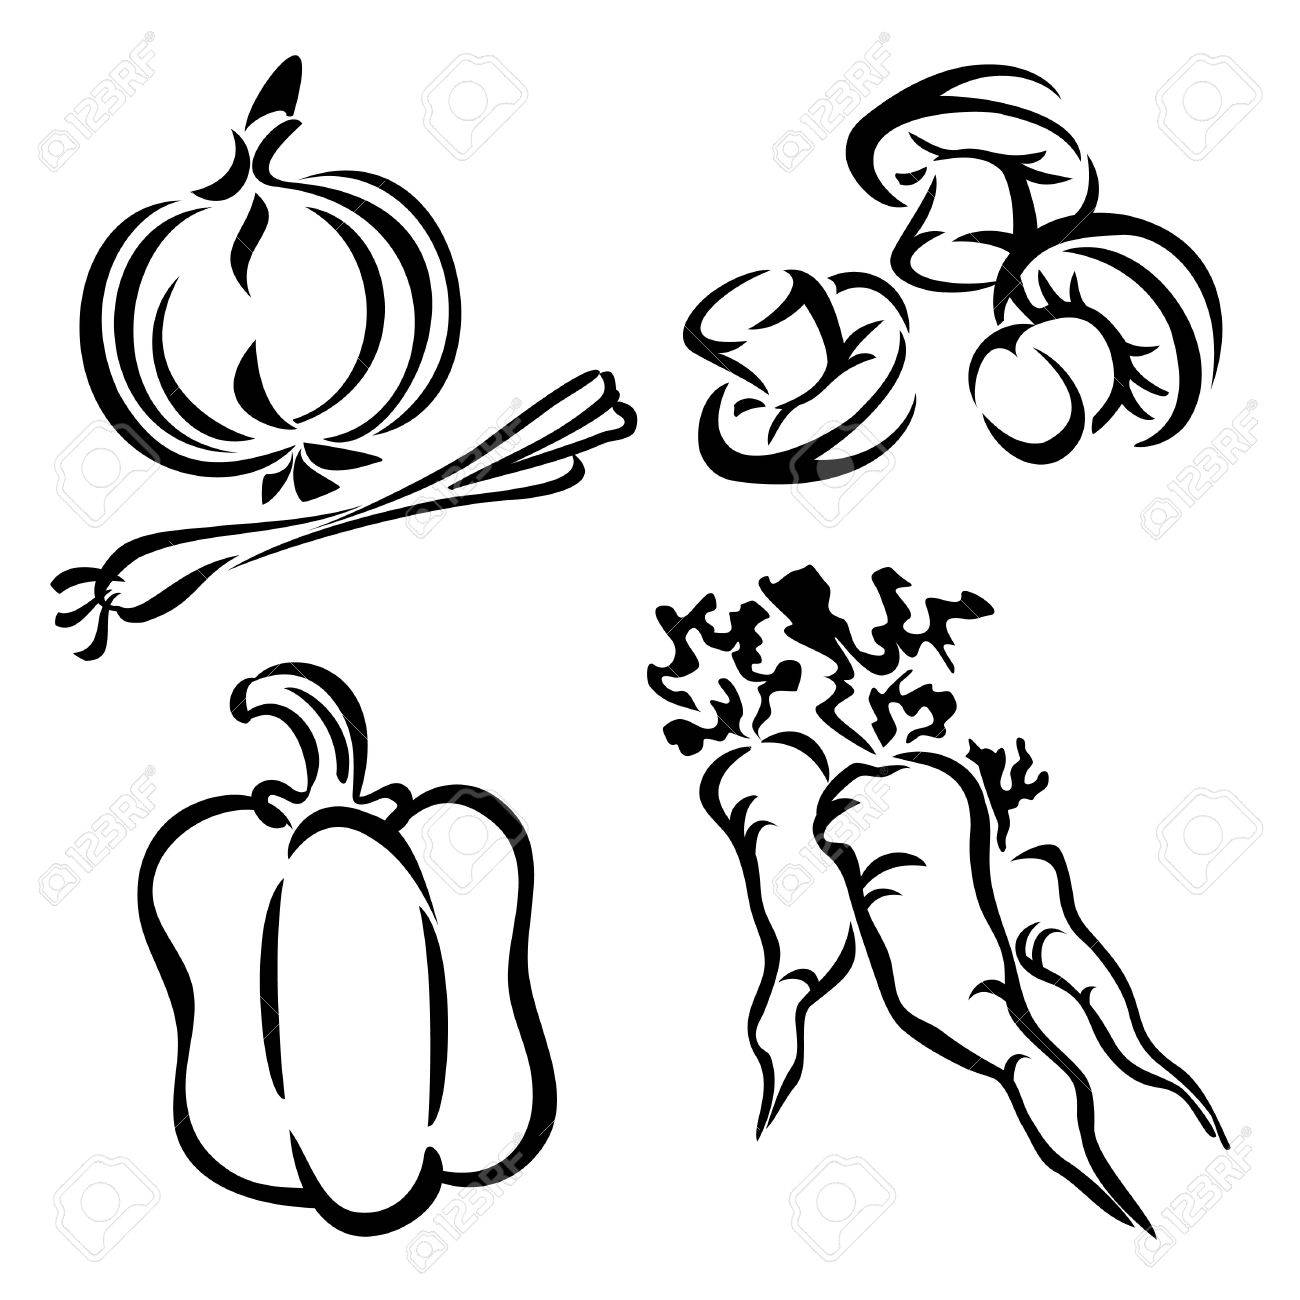 set vector images of vegetables royalty free cliparts vectors